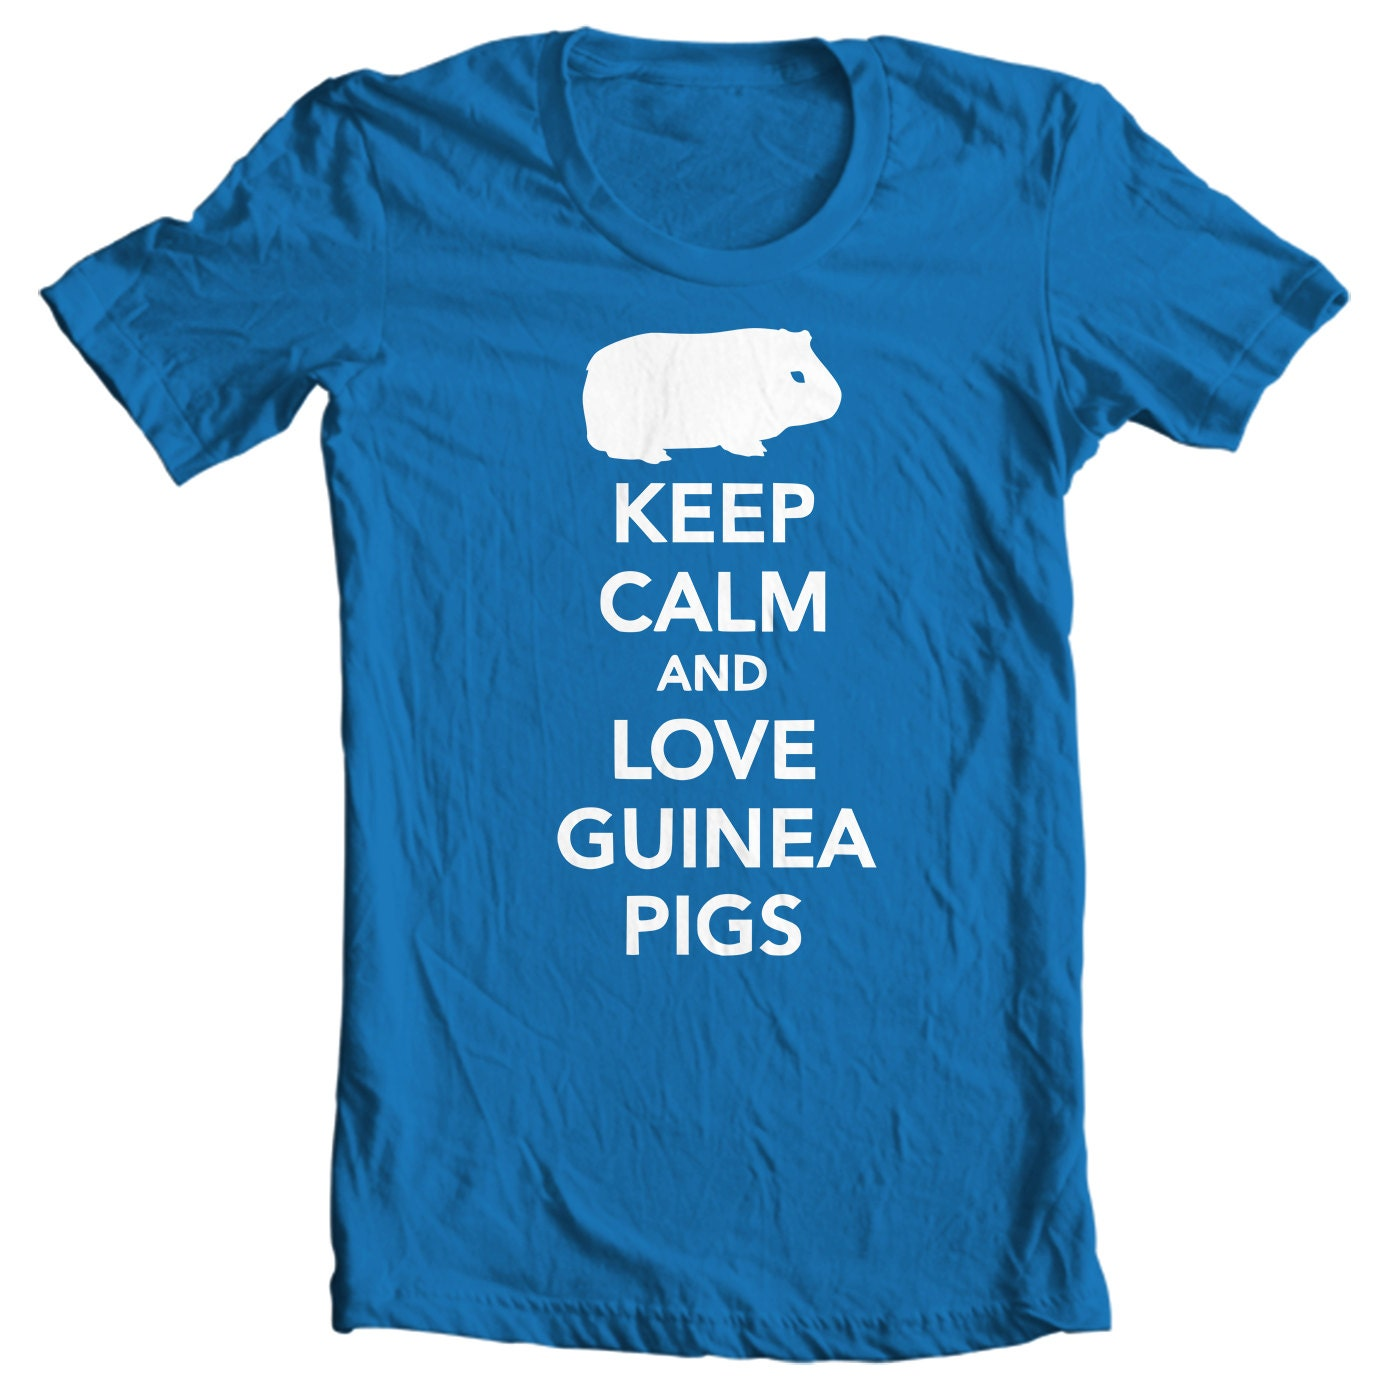 Guinea Pigs Kids T-shirt - Keep Calm And Love Guinea Pigs Kids T-shirt